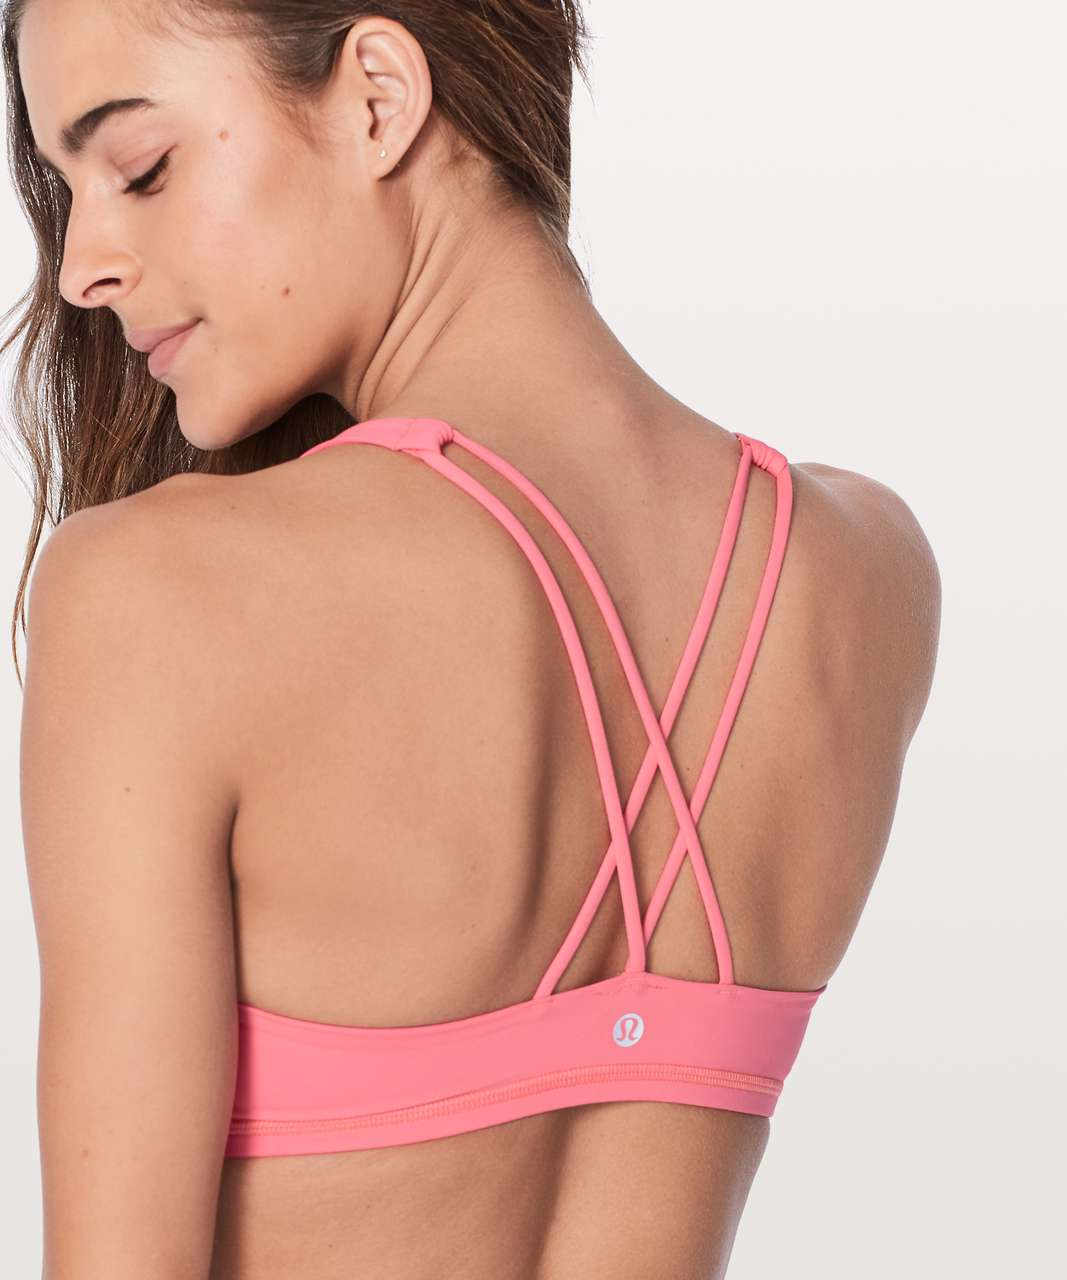 Lululemon Free To Be Bra - Flash Light Tone